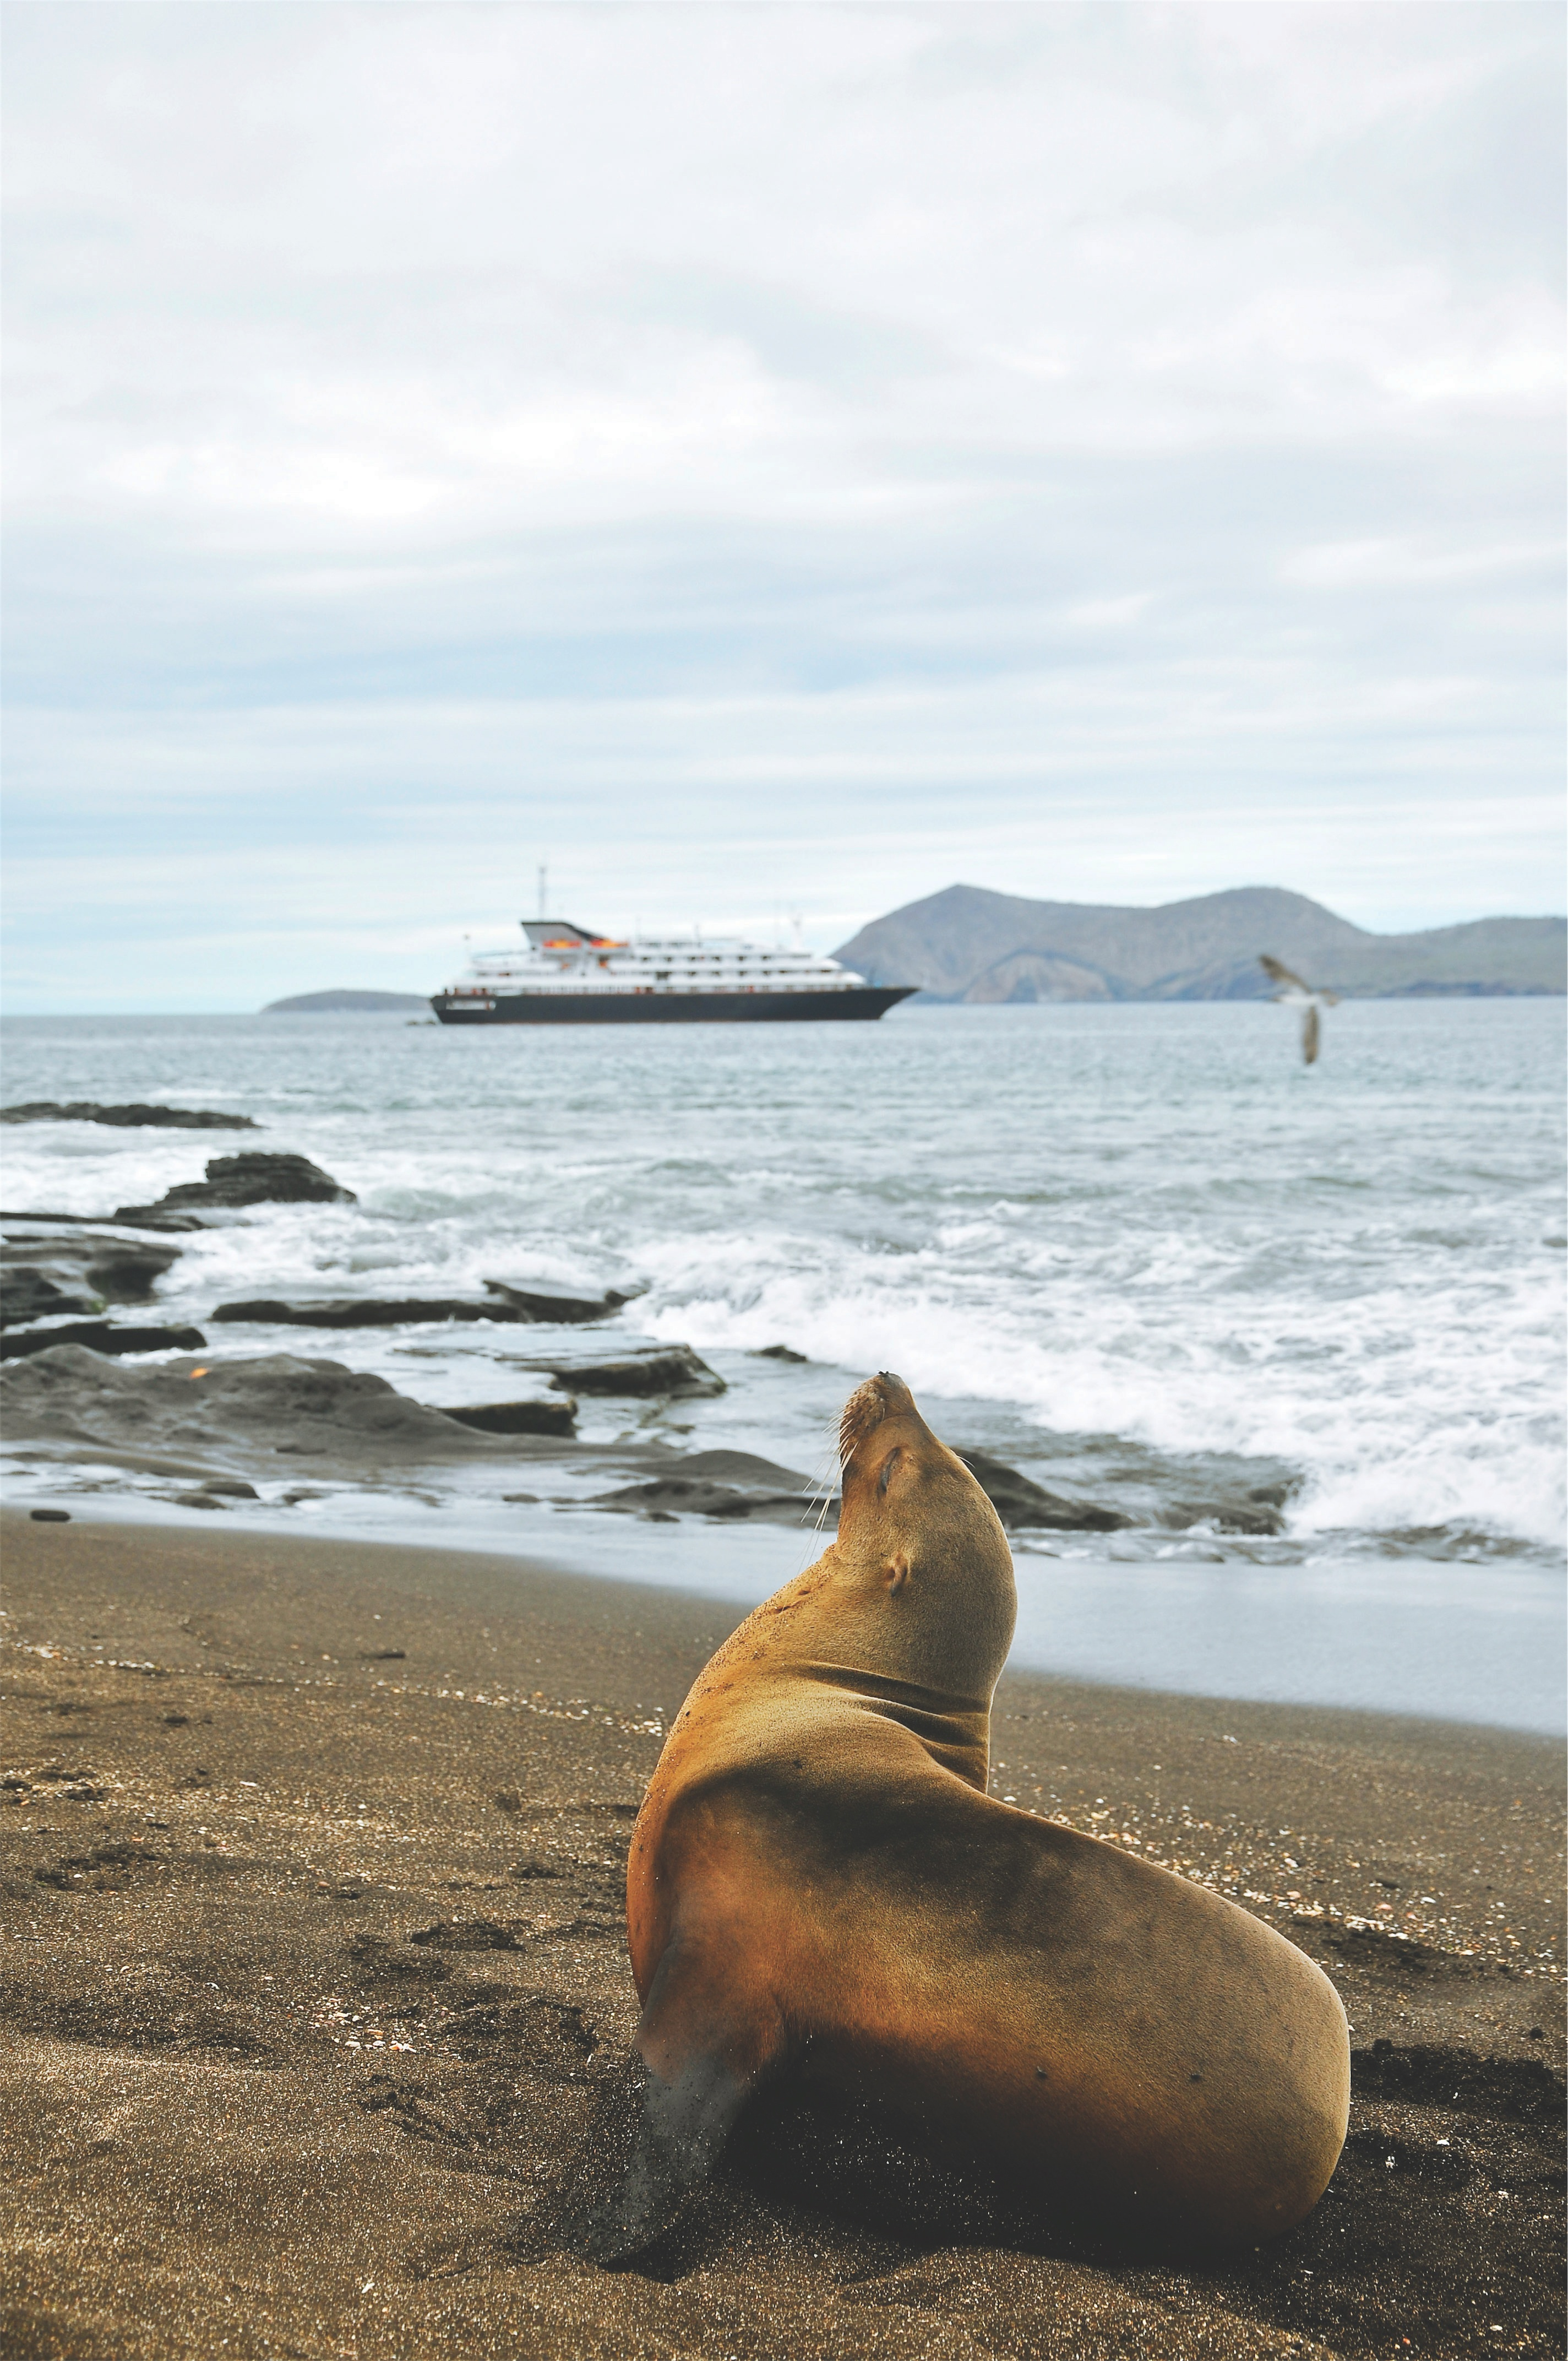 Silversea Cruises Silver Galapagos Exterior Exterior with Sea Lion in Foreground 1.jpg